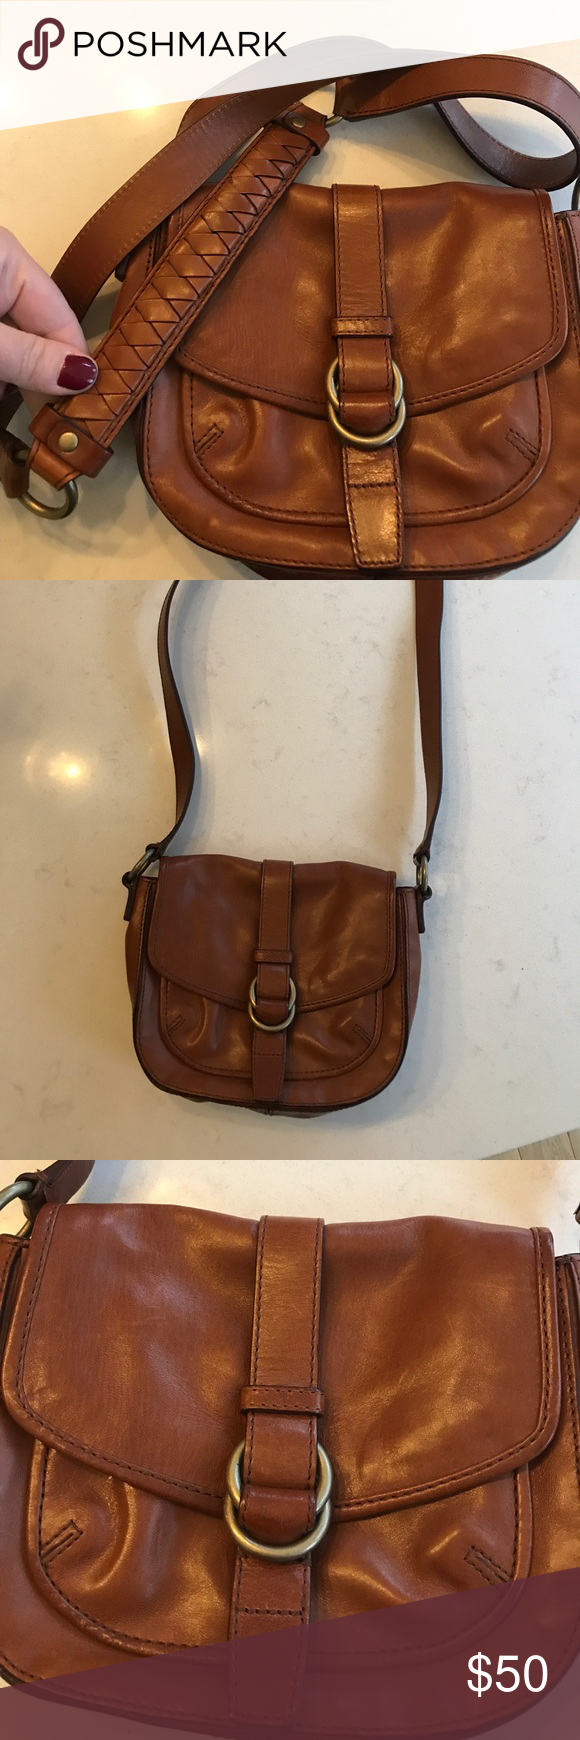 5b455794989 Cole Haan small brown leather crossbody bag cognac Adorable like new small  size Cole Haan crossbody